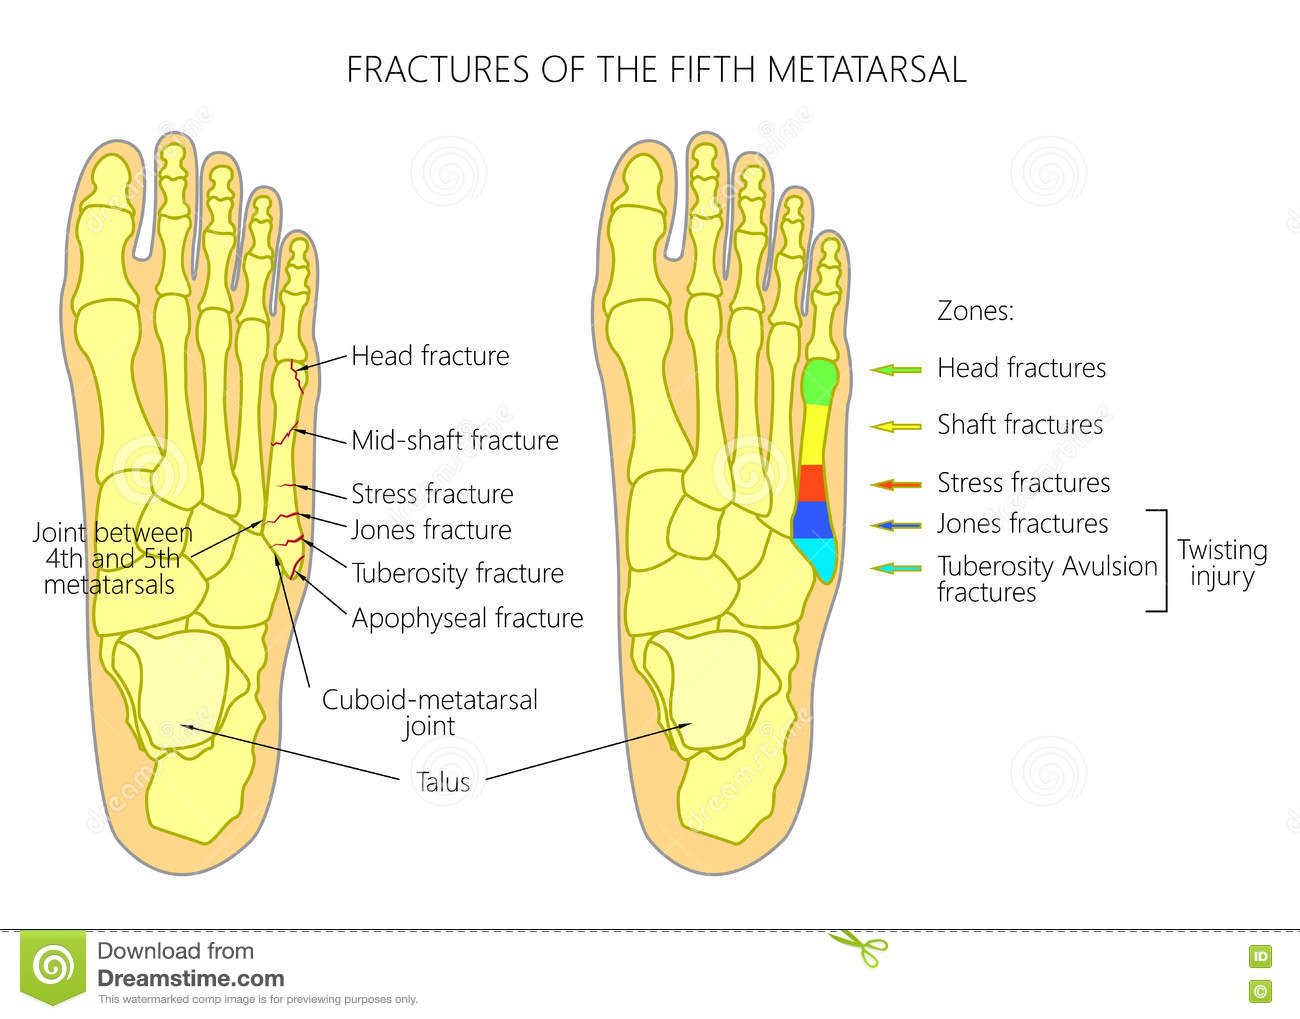 hight resolution of illustration diagram of the fifth metatarsal fractures types and zones classification in the foot